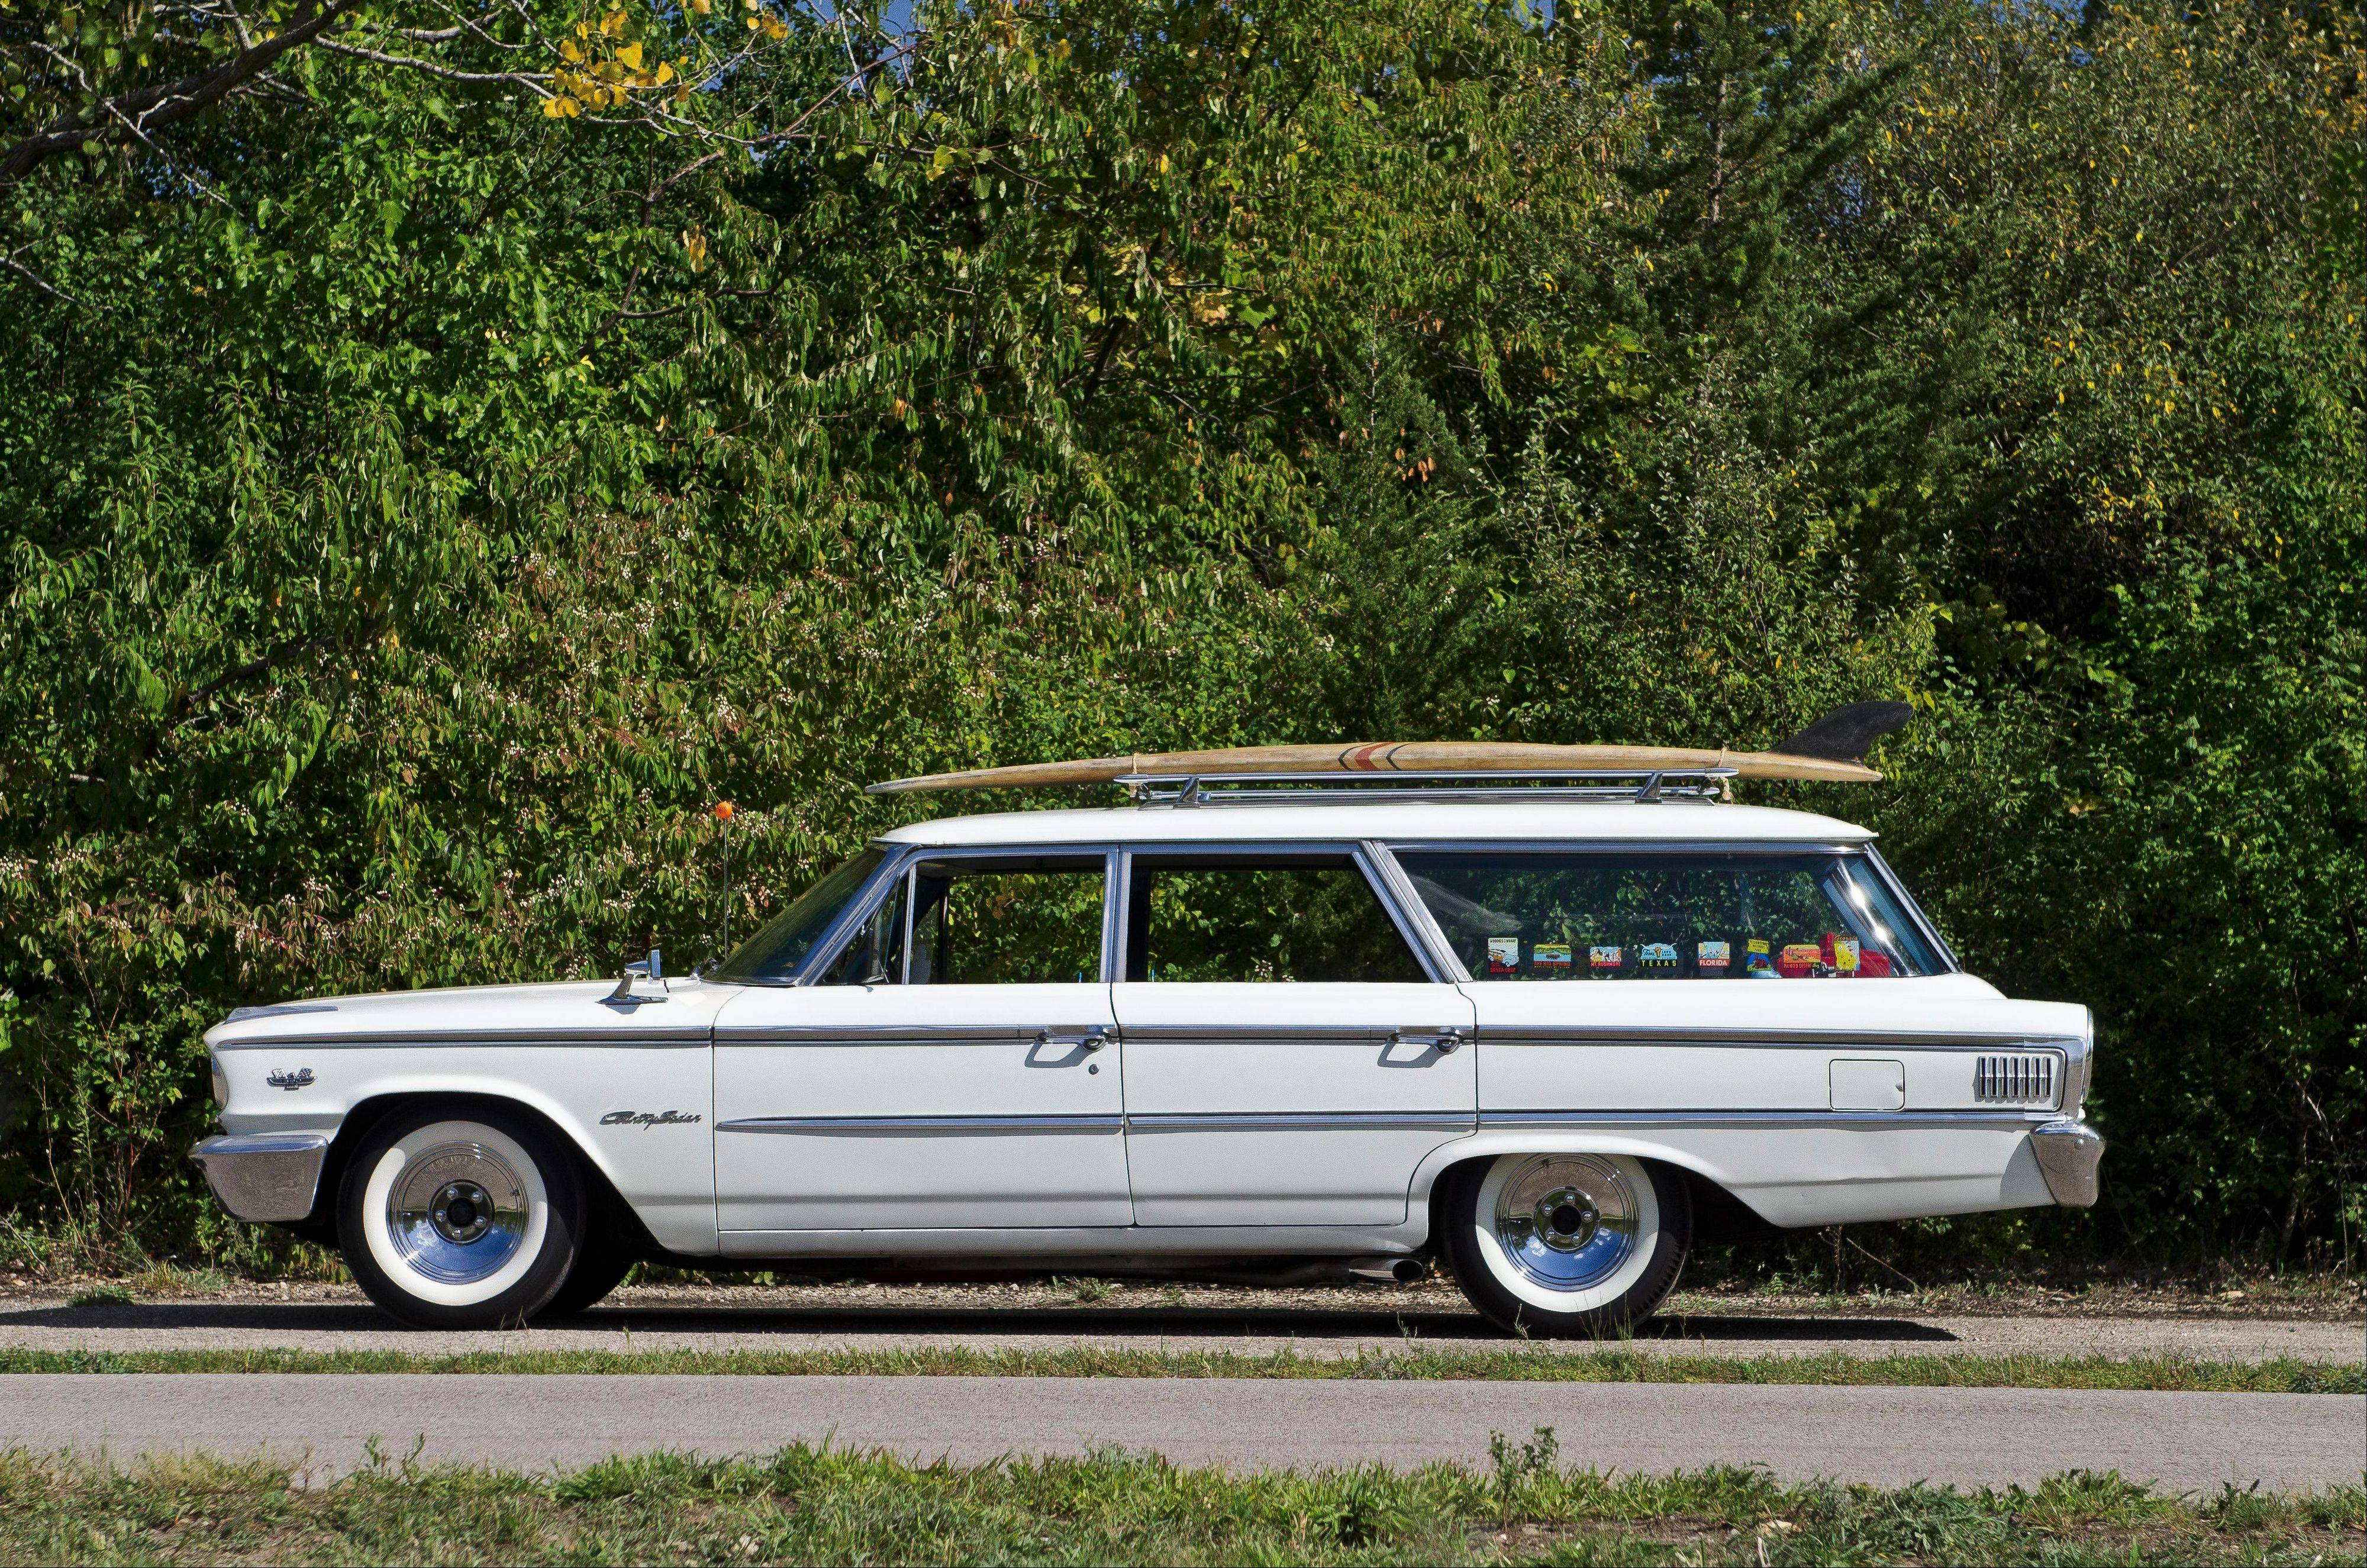 1963 Ford Galaxie Country Sedan, John Hernandez, West Dundee